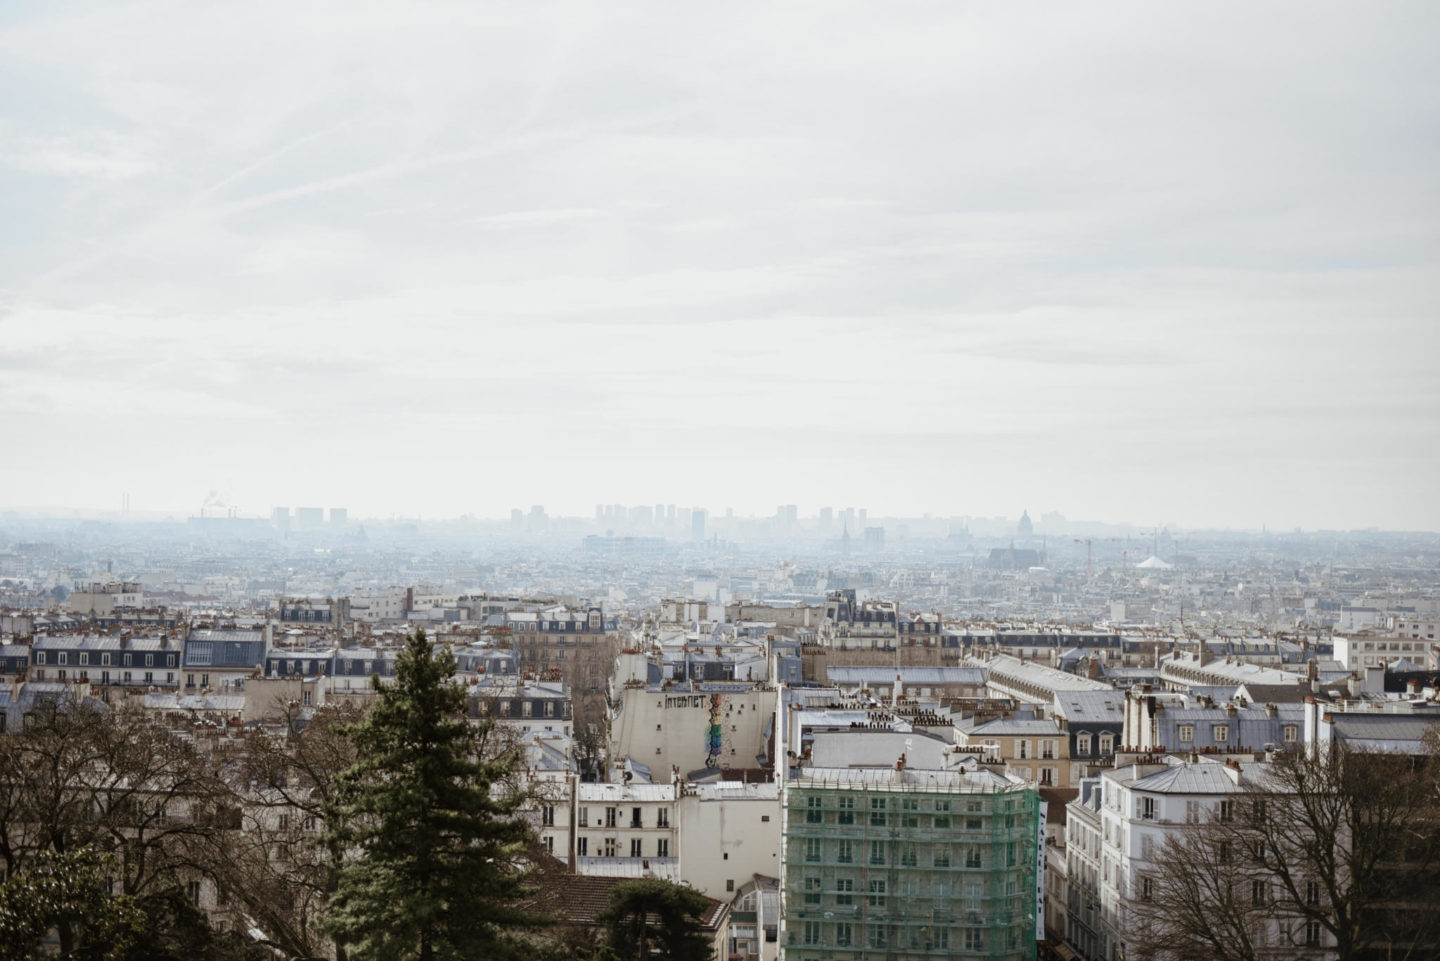 paris skyline from sacre coeur in paris